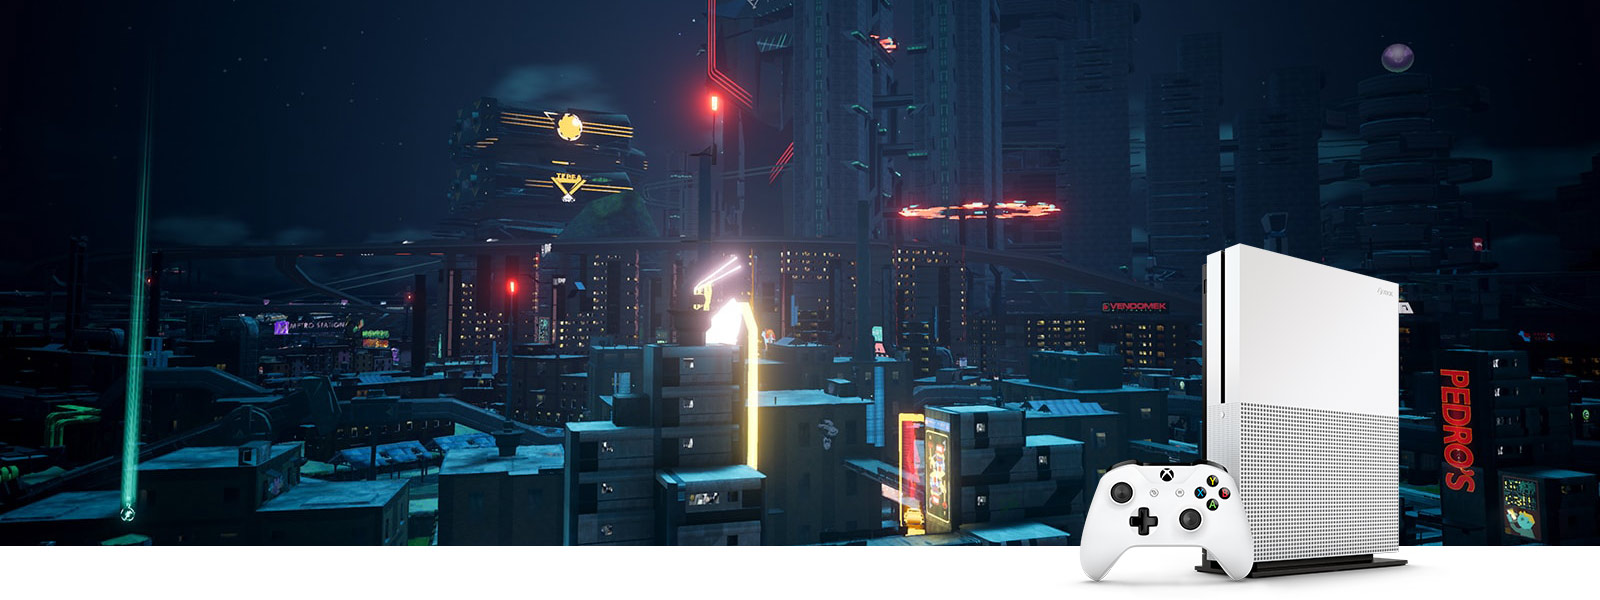 Capture d'écran de Crackdown 3 sans HDR